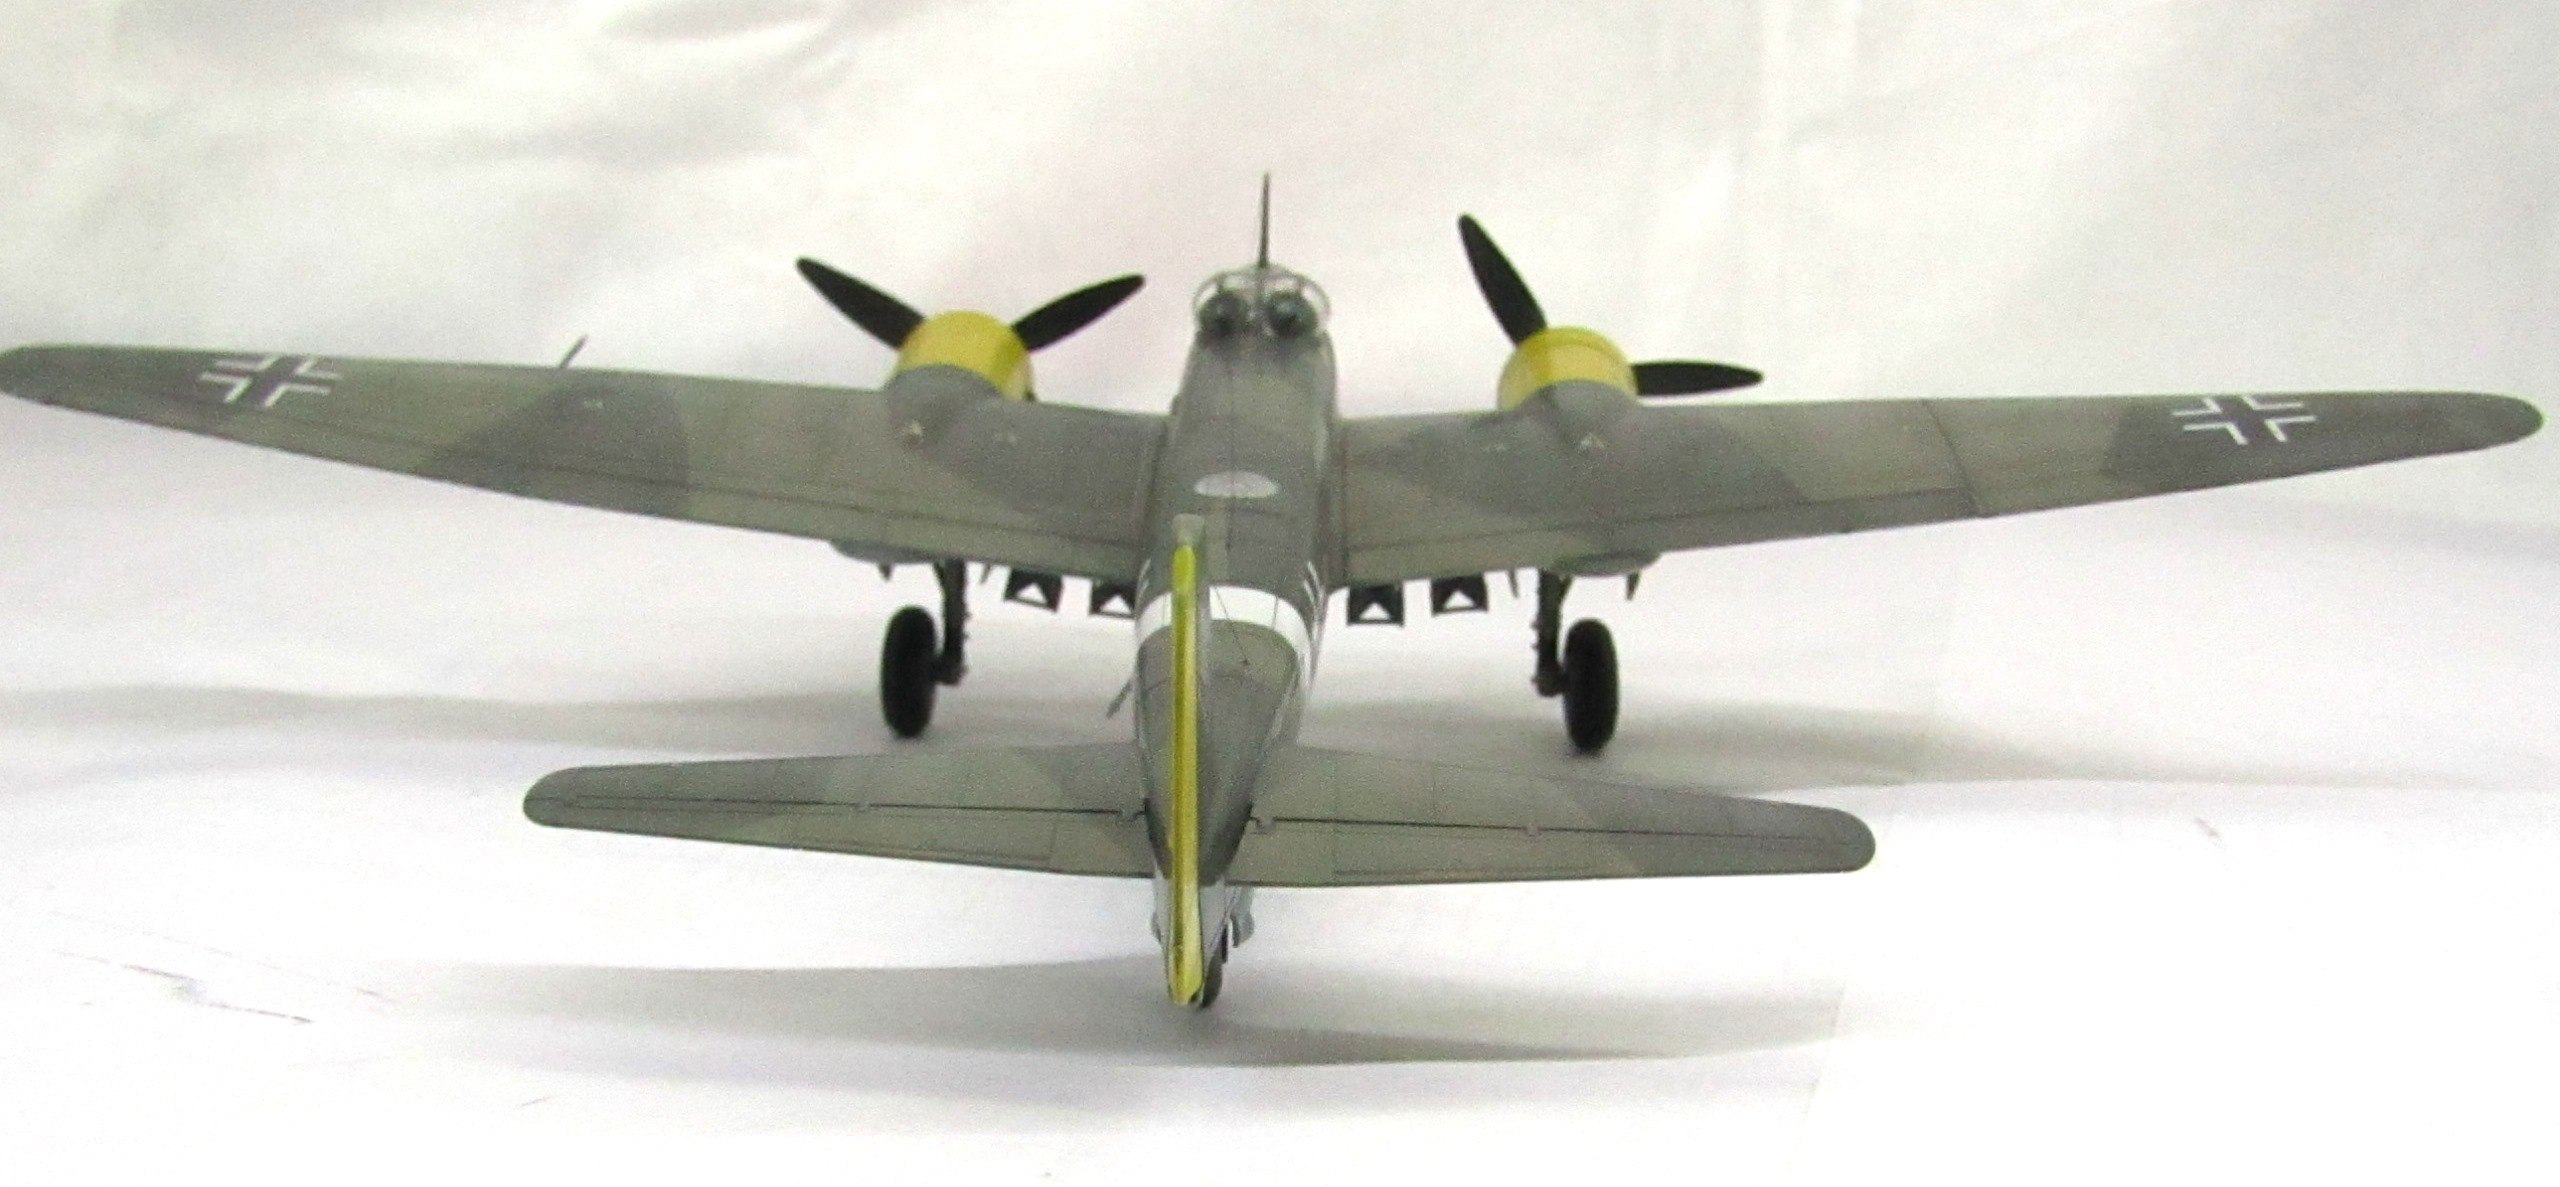 Ju-88 A-4 1/72 (Звезда) Iwpgvni7q5Y